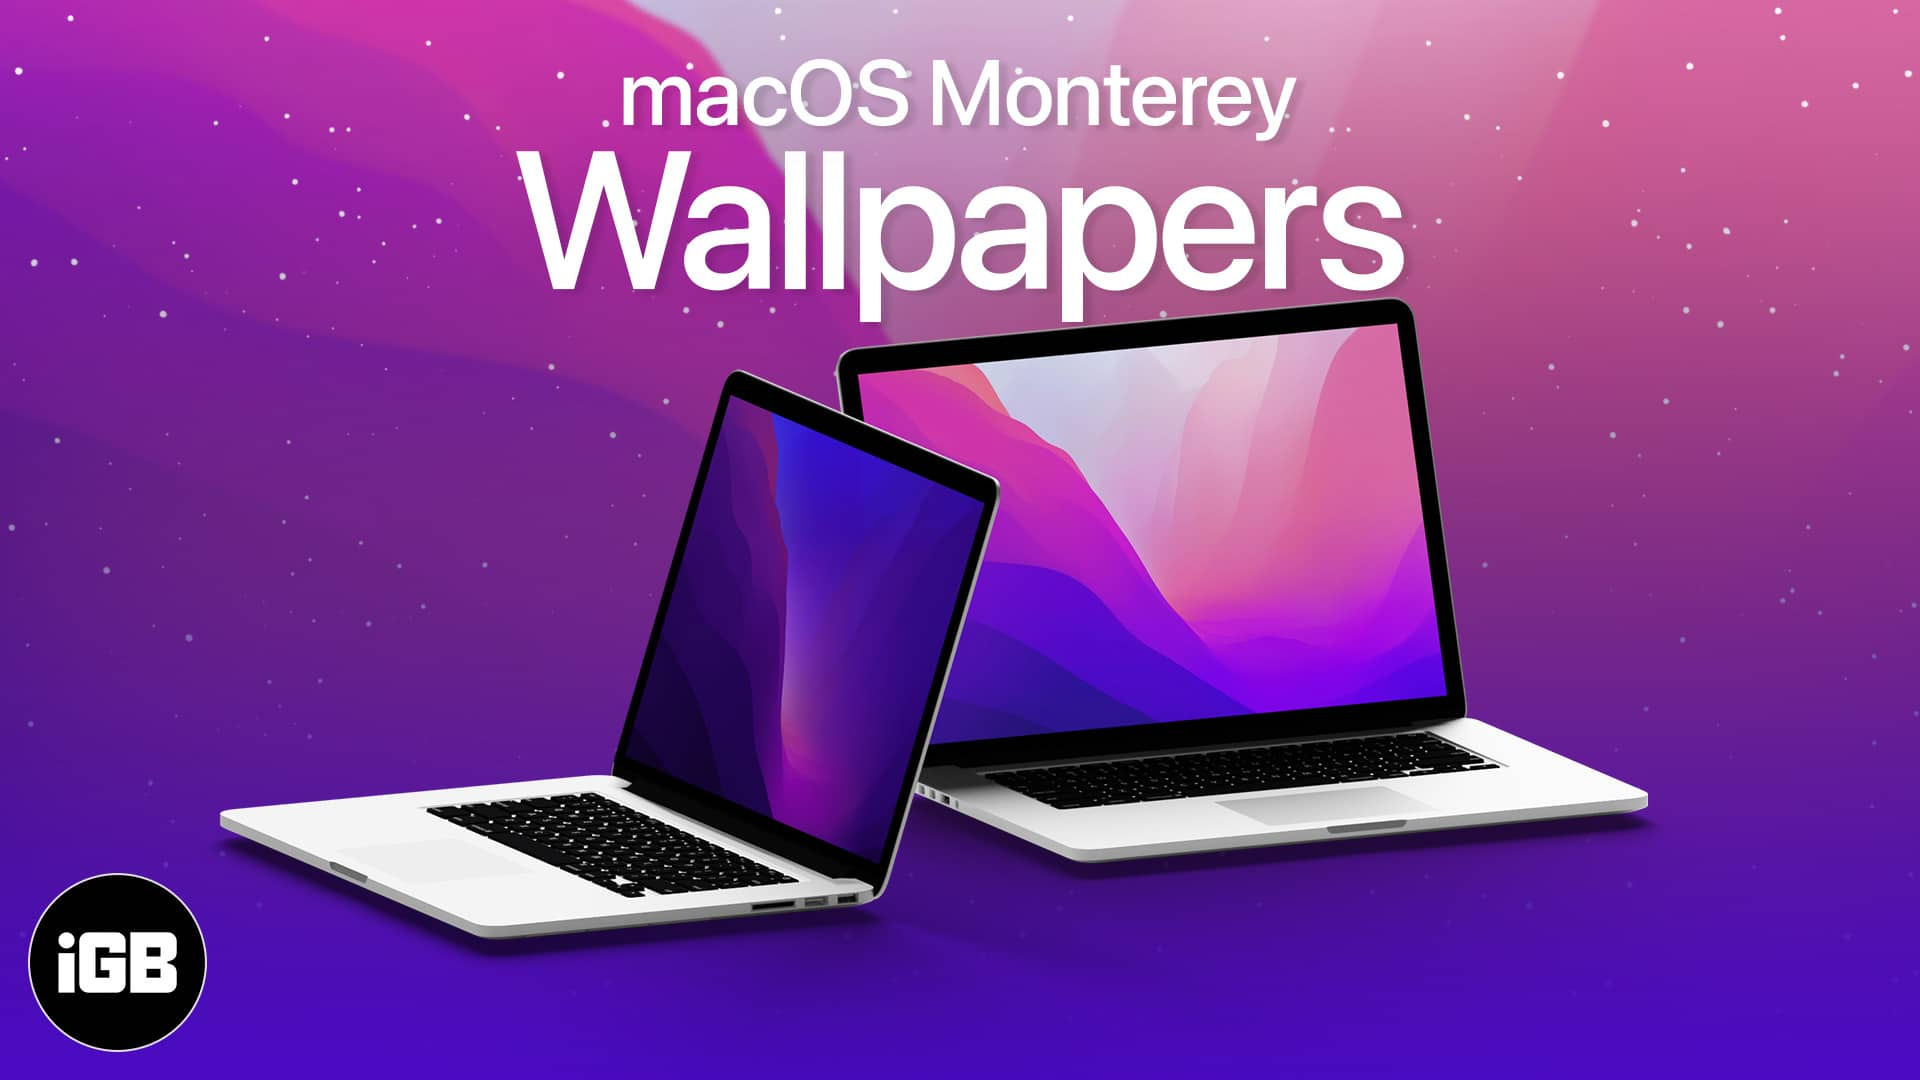 Each new macos version is accompanied by a new set of wallpapers which usually look pretty good both on your mac but also on your iphone & Download Macos Monterey Wallpapers 6k Resolution In 2021 Igeeksblog